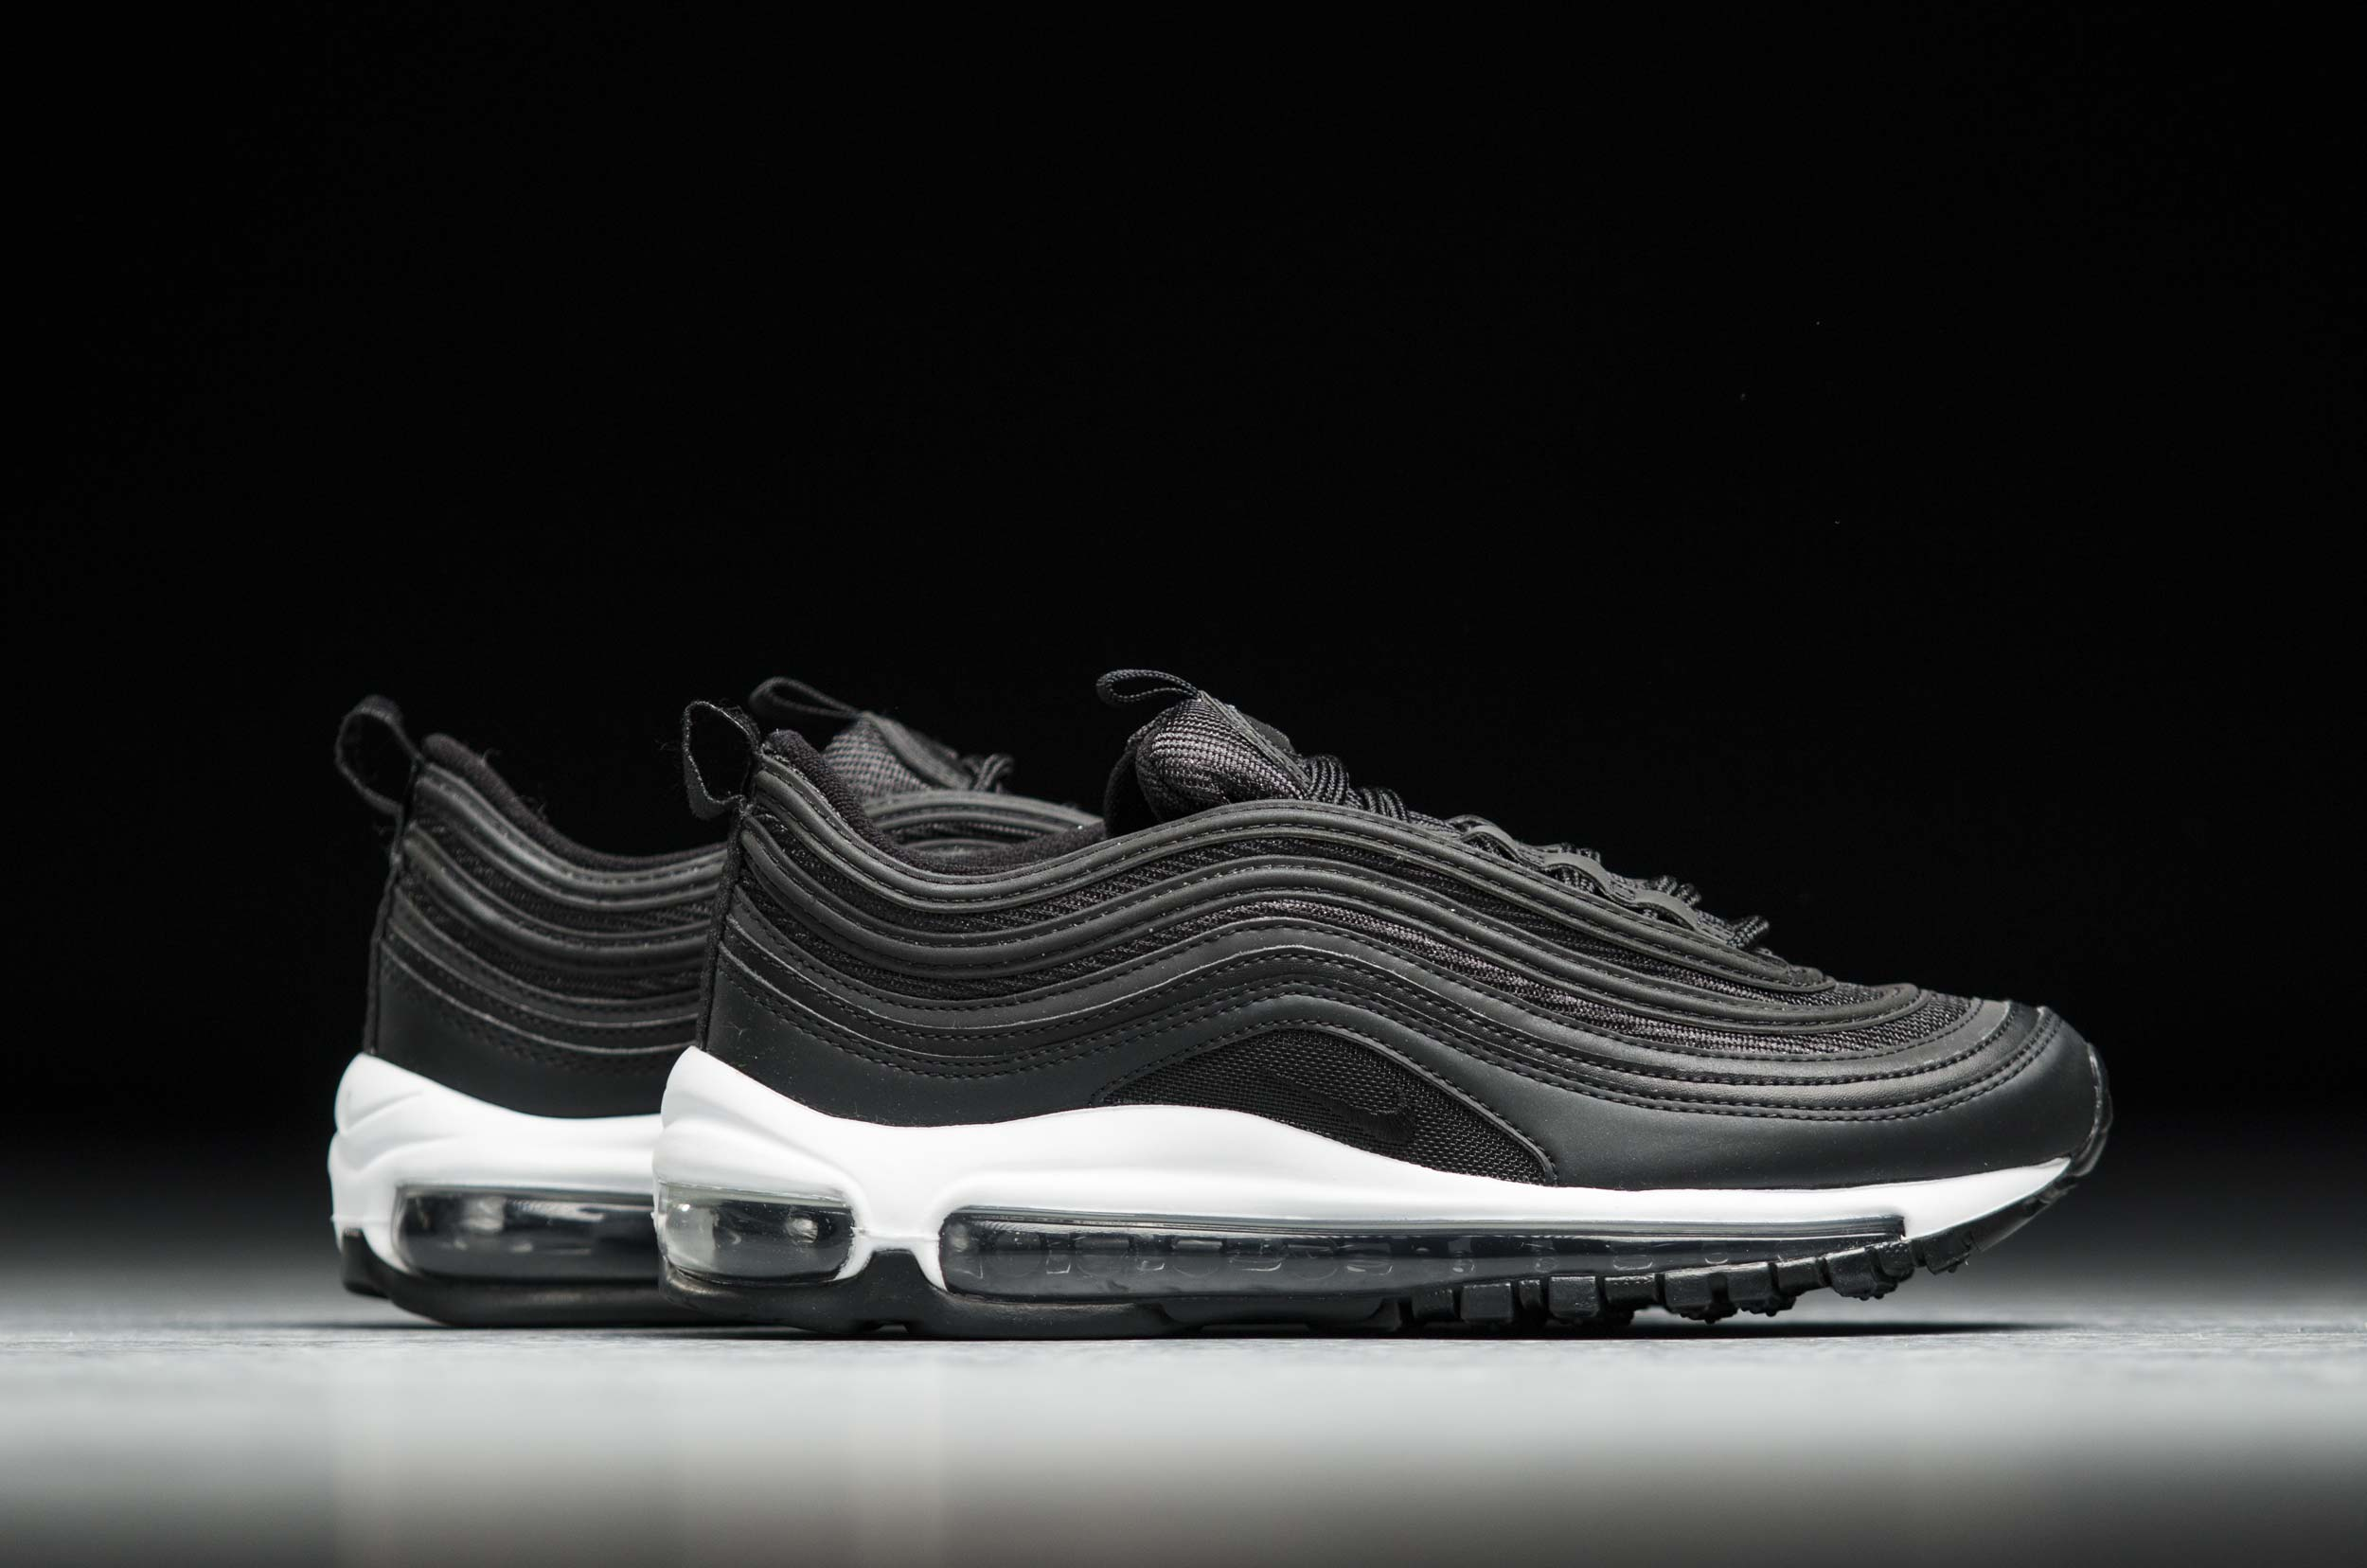 quality design 47457 5abd6 NIKE AIR MAX 97 921733-006 Μαύρο ...